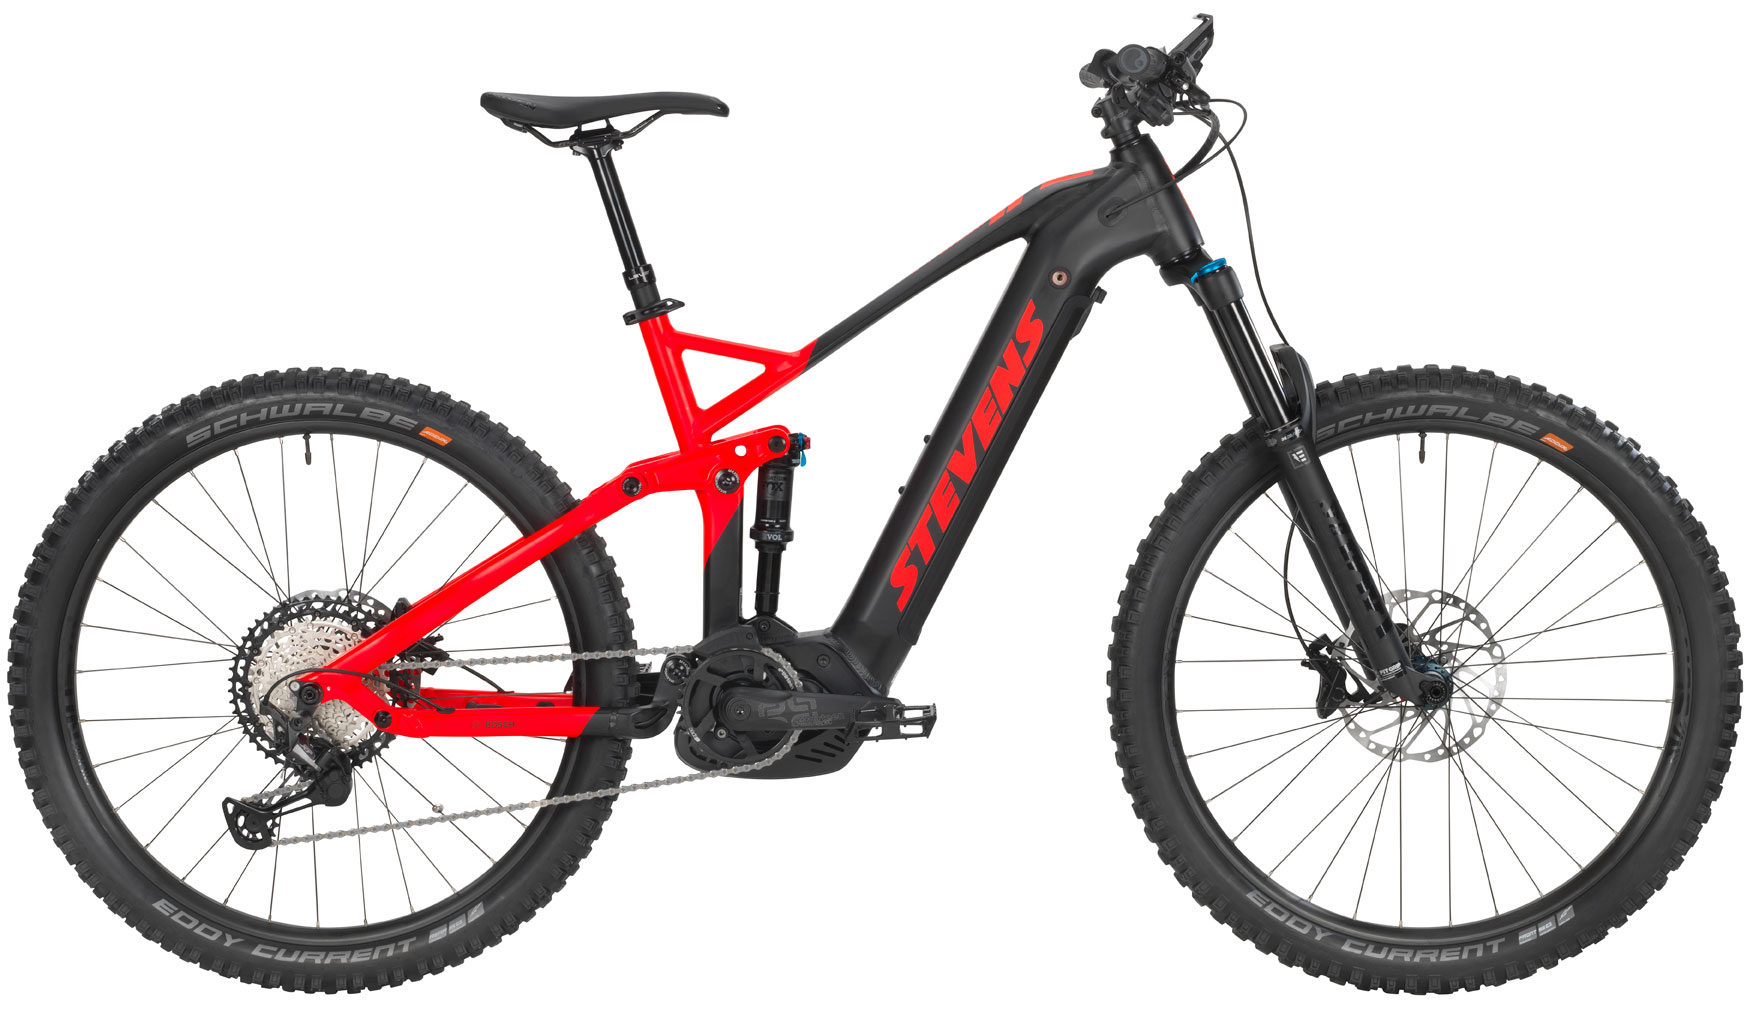 Stevens E-Pordoi E-Mountainbike Fully